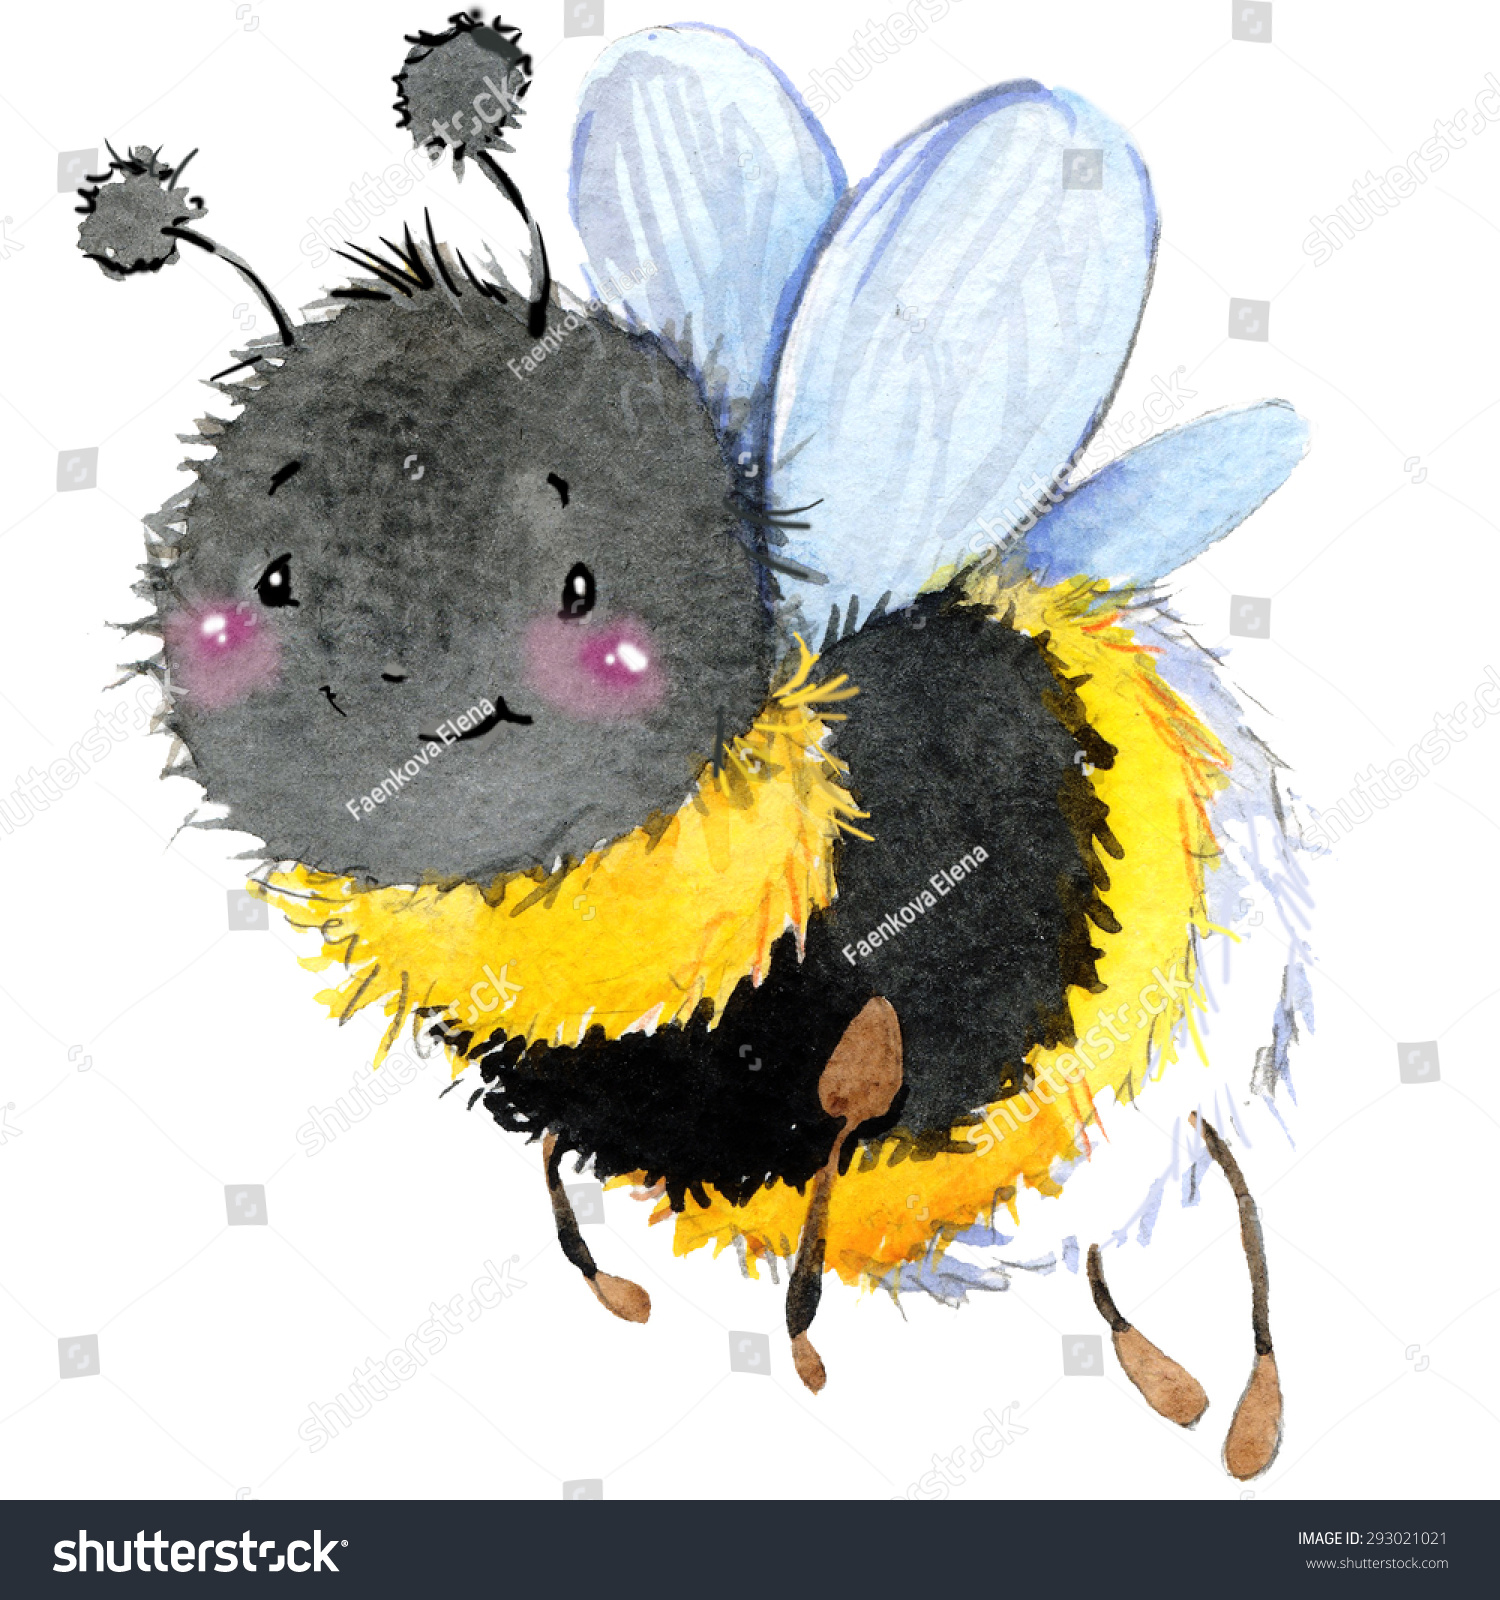 Cartoon Insect Bumblebee Watercolor Illustration Isolated On White Background